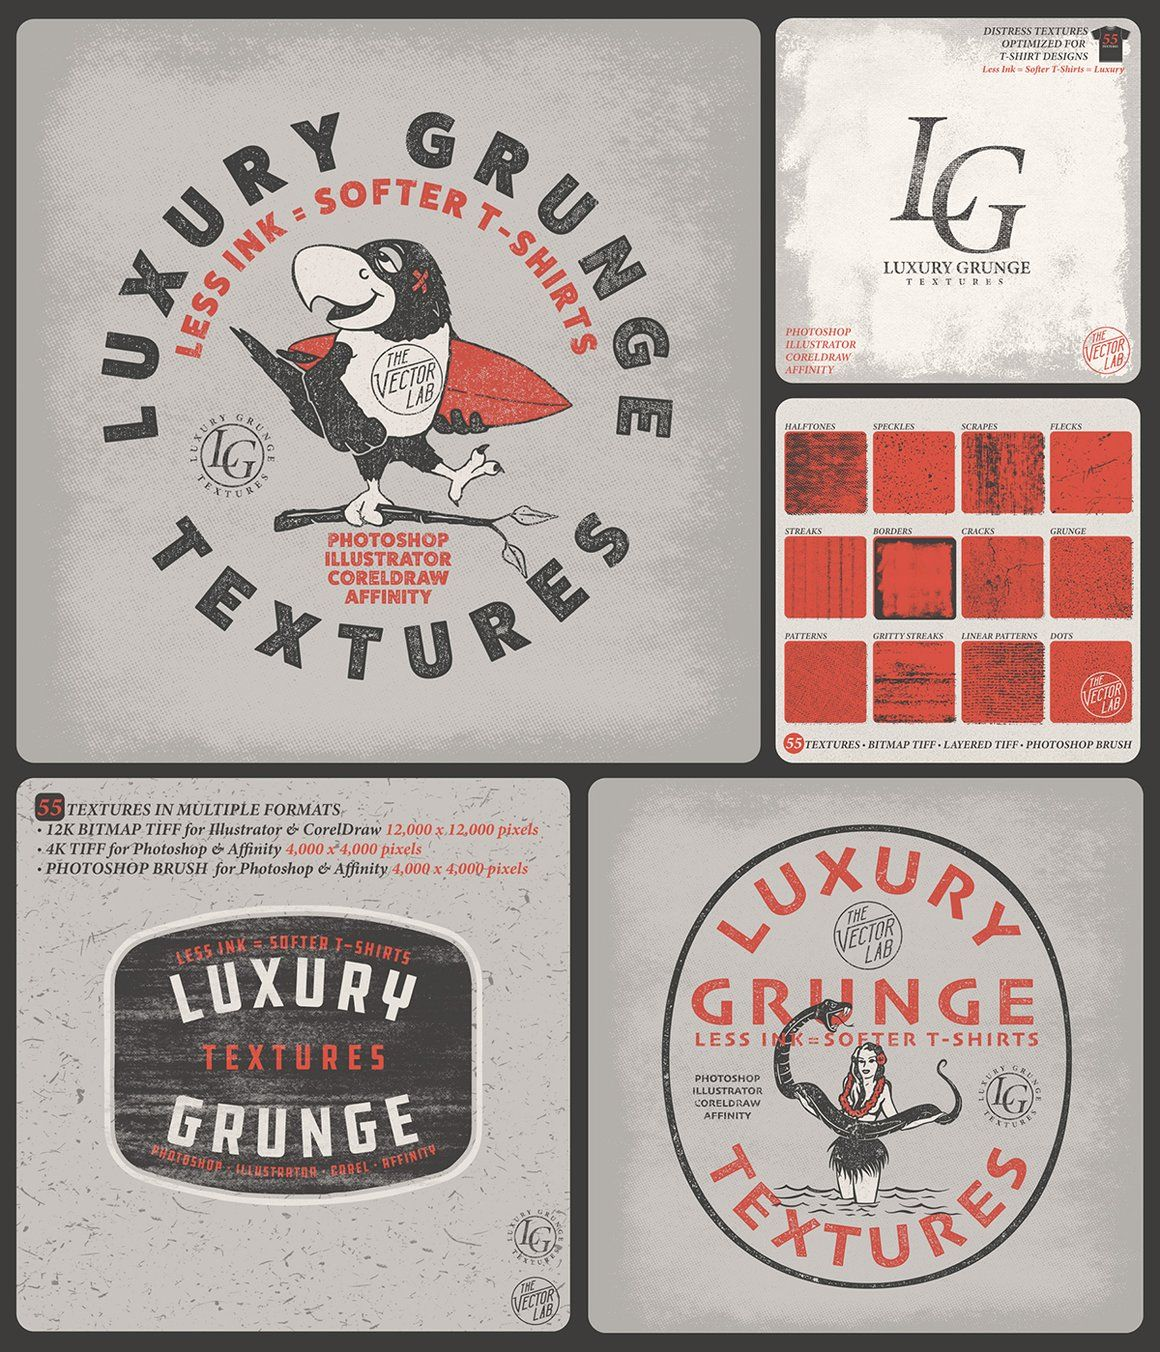 Apply Gritty And Grungy Texture To Your Designs Logos Typography And Illustrations Optim Grunge Textures Graphic Design Software Graphic Design Inspiration